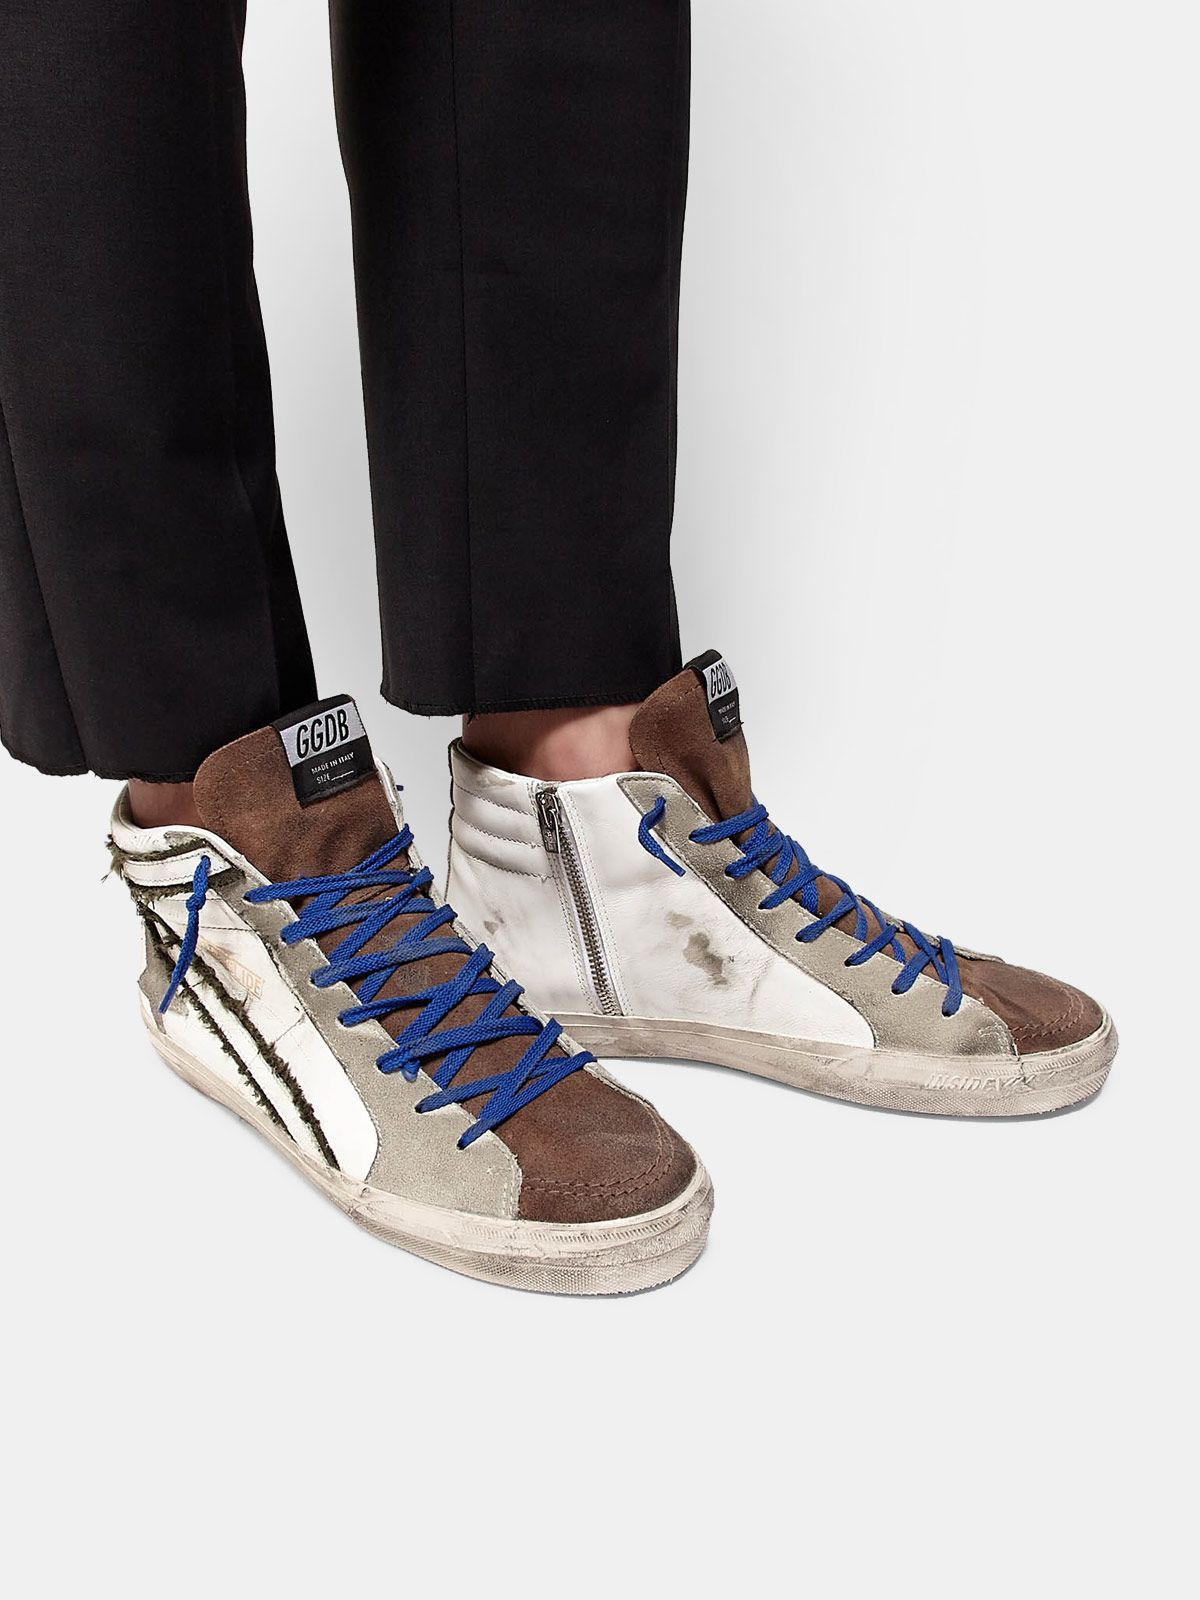 Golden Goose - Leather and suede sneakers with inserts in raw edge canvas in